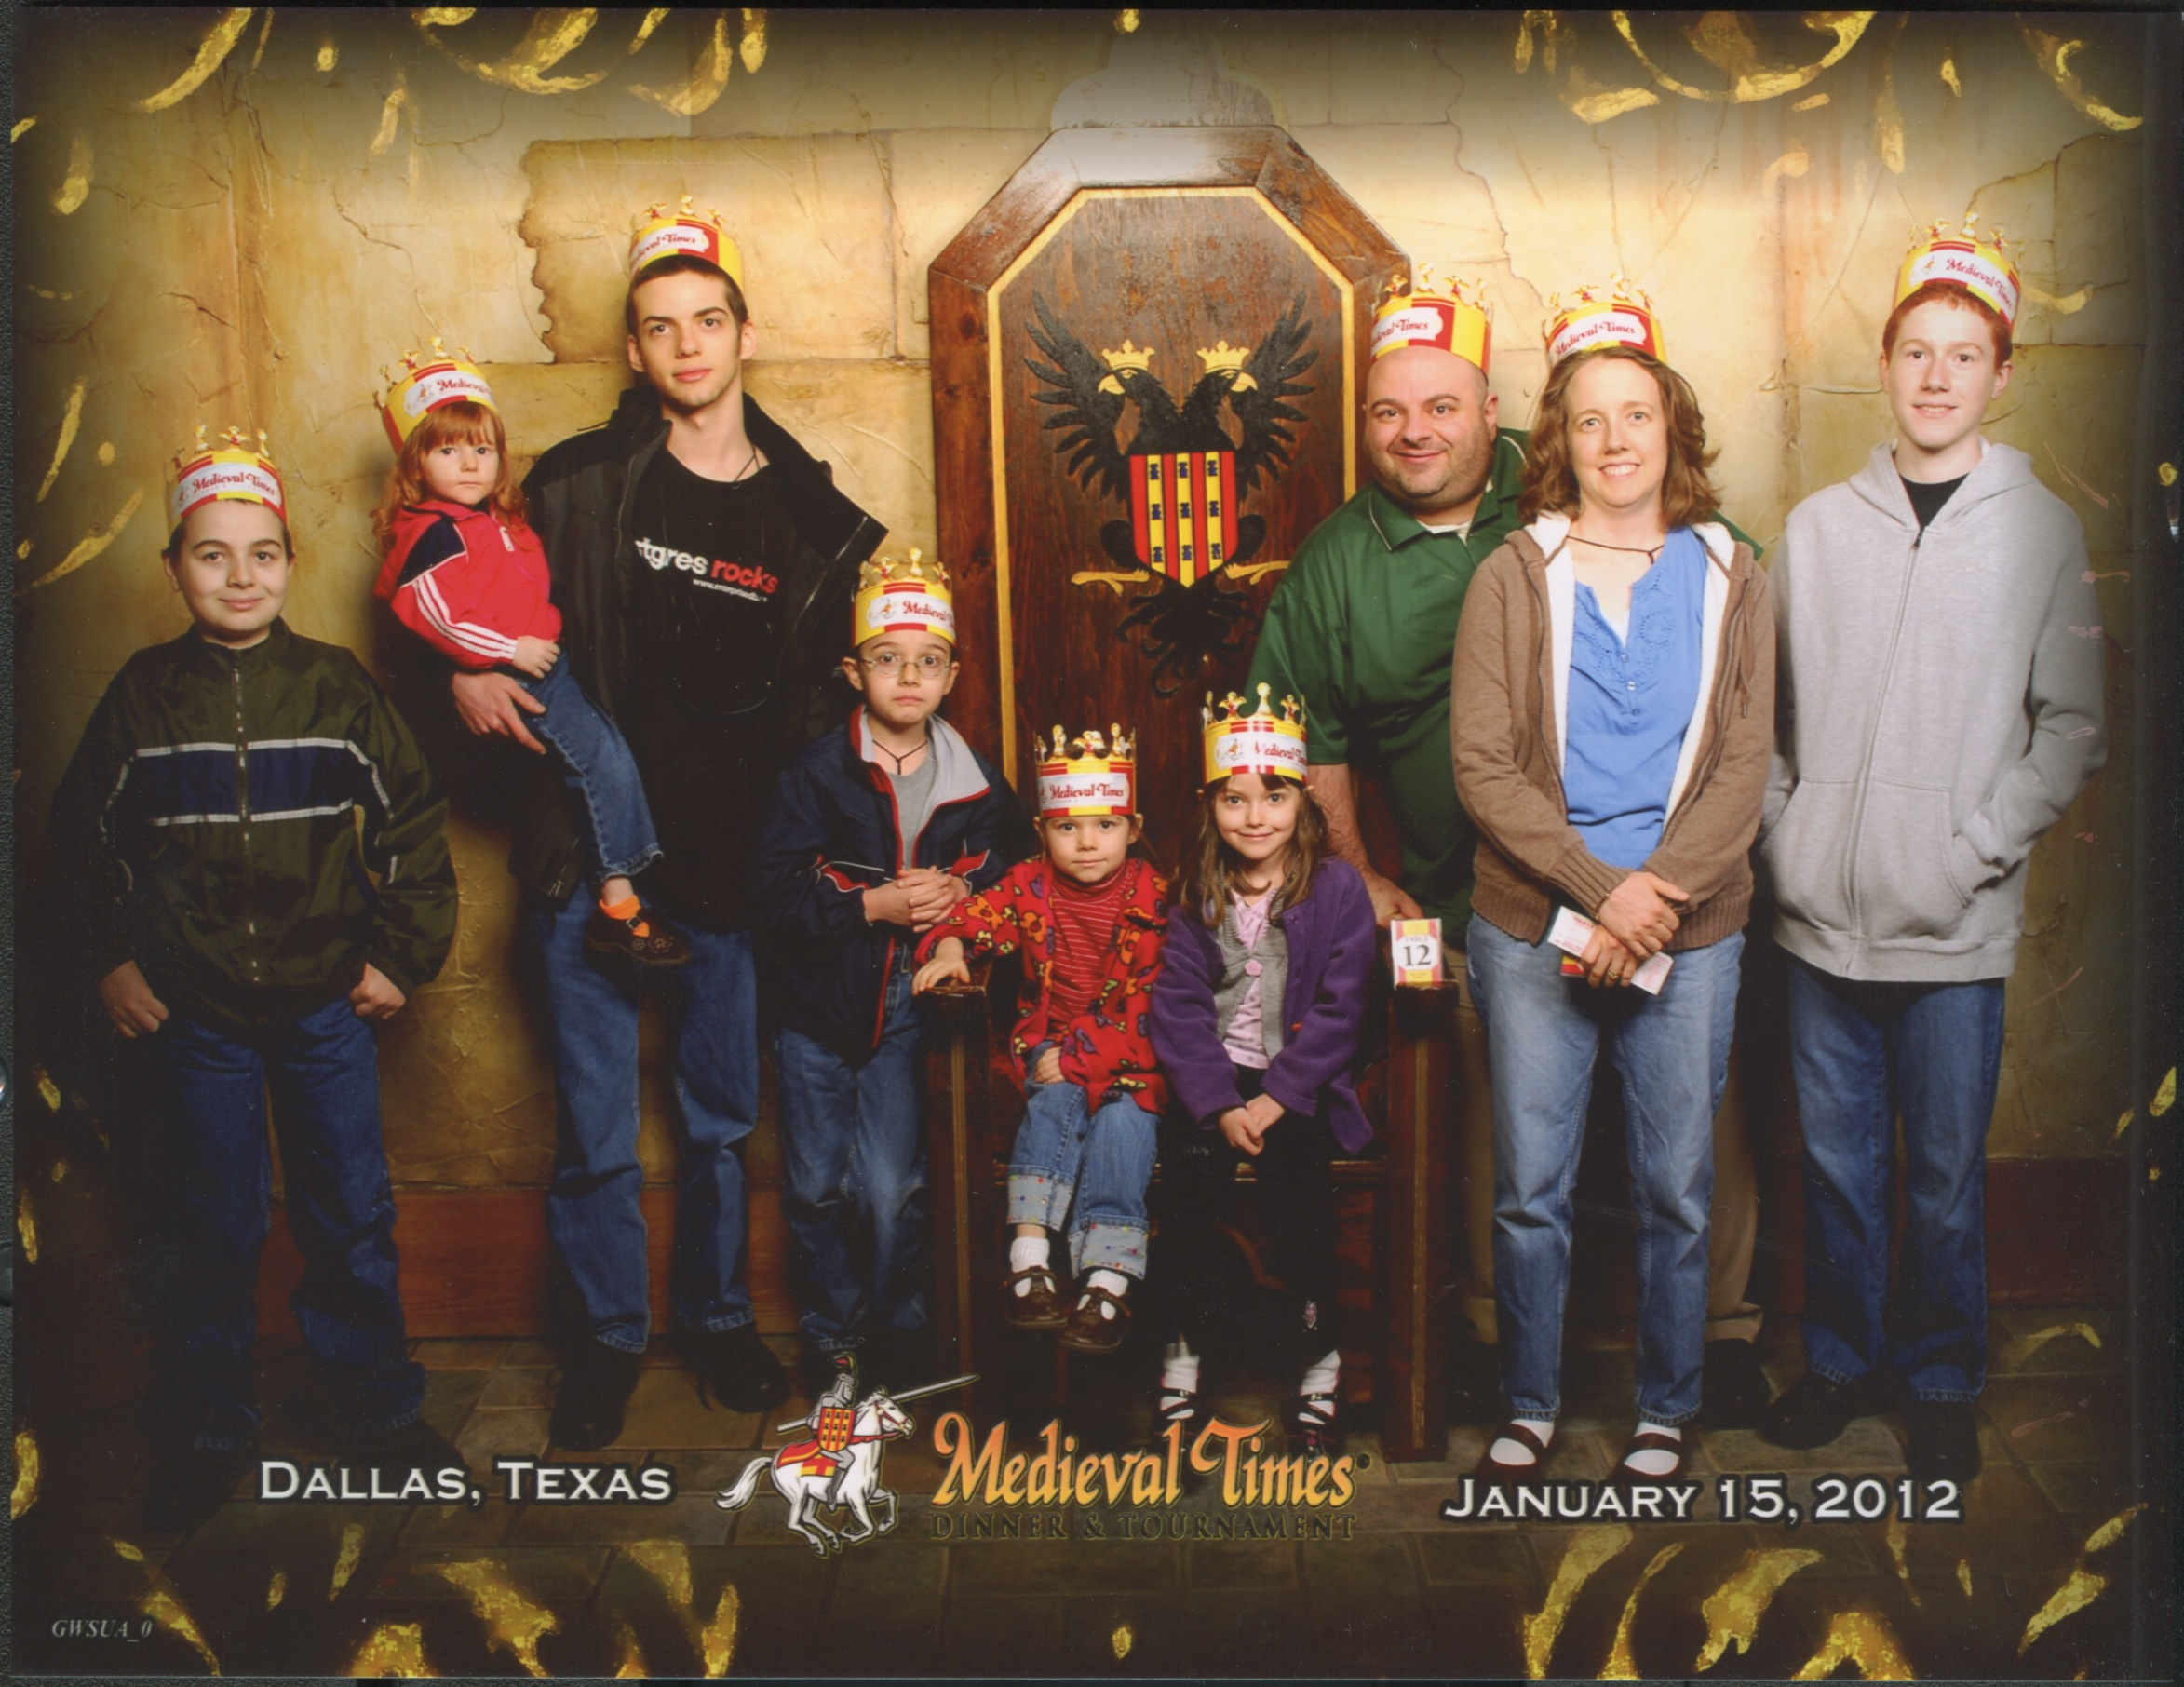 Medieval Times Throne Room. Nunzio, Joseph holding Catie, Cross, Bernie, Jacinta, Justin, Jen and Michael. Bottom Text: 'Dallas, Texas January 15, 2012'